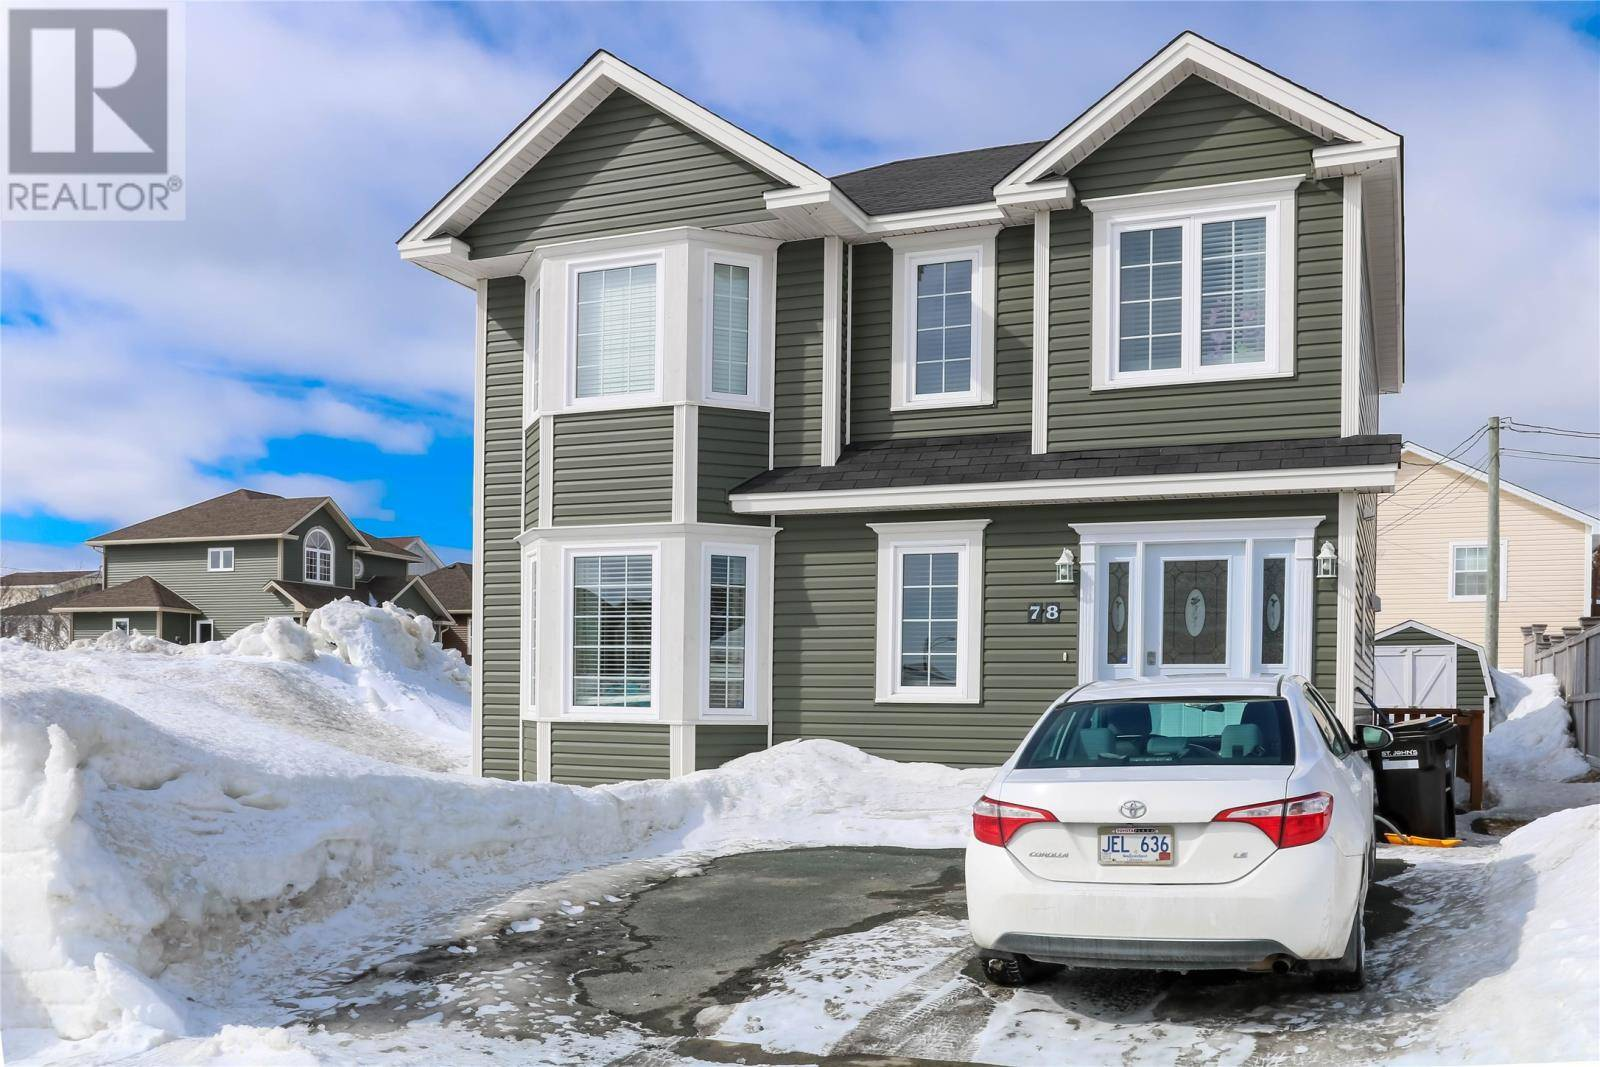 House for sale at 78 Cherokee Dr St. John's Newfoundland - MLS: 1211921